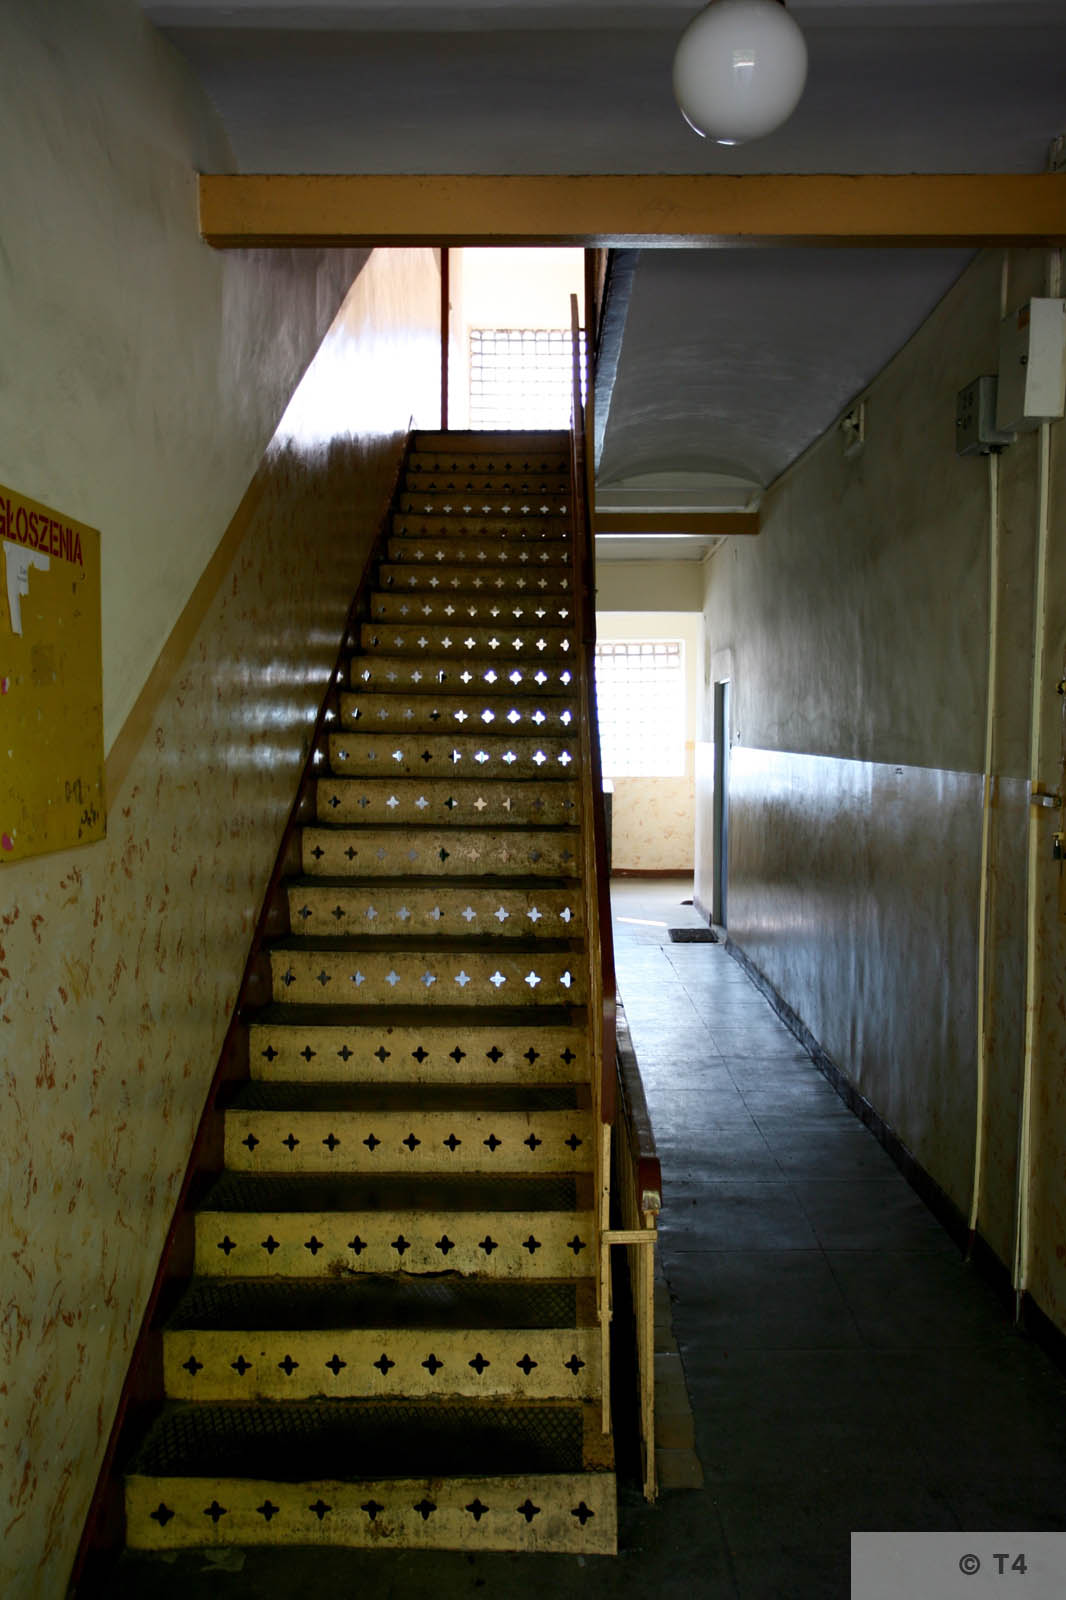 Staircase in the interior of the administrative and prisoner accomodation buiilding. 2006 T4 7948